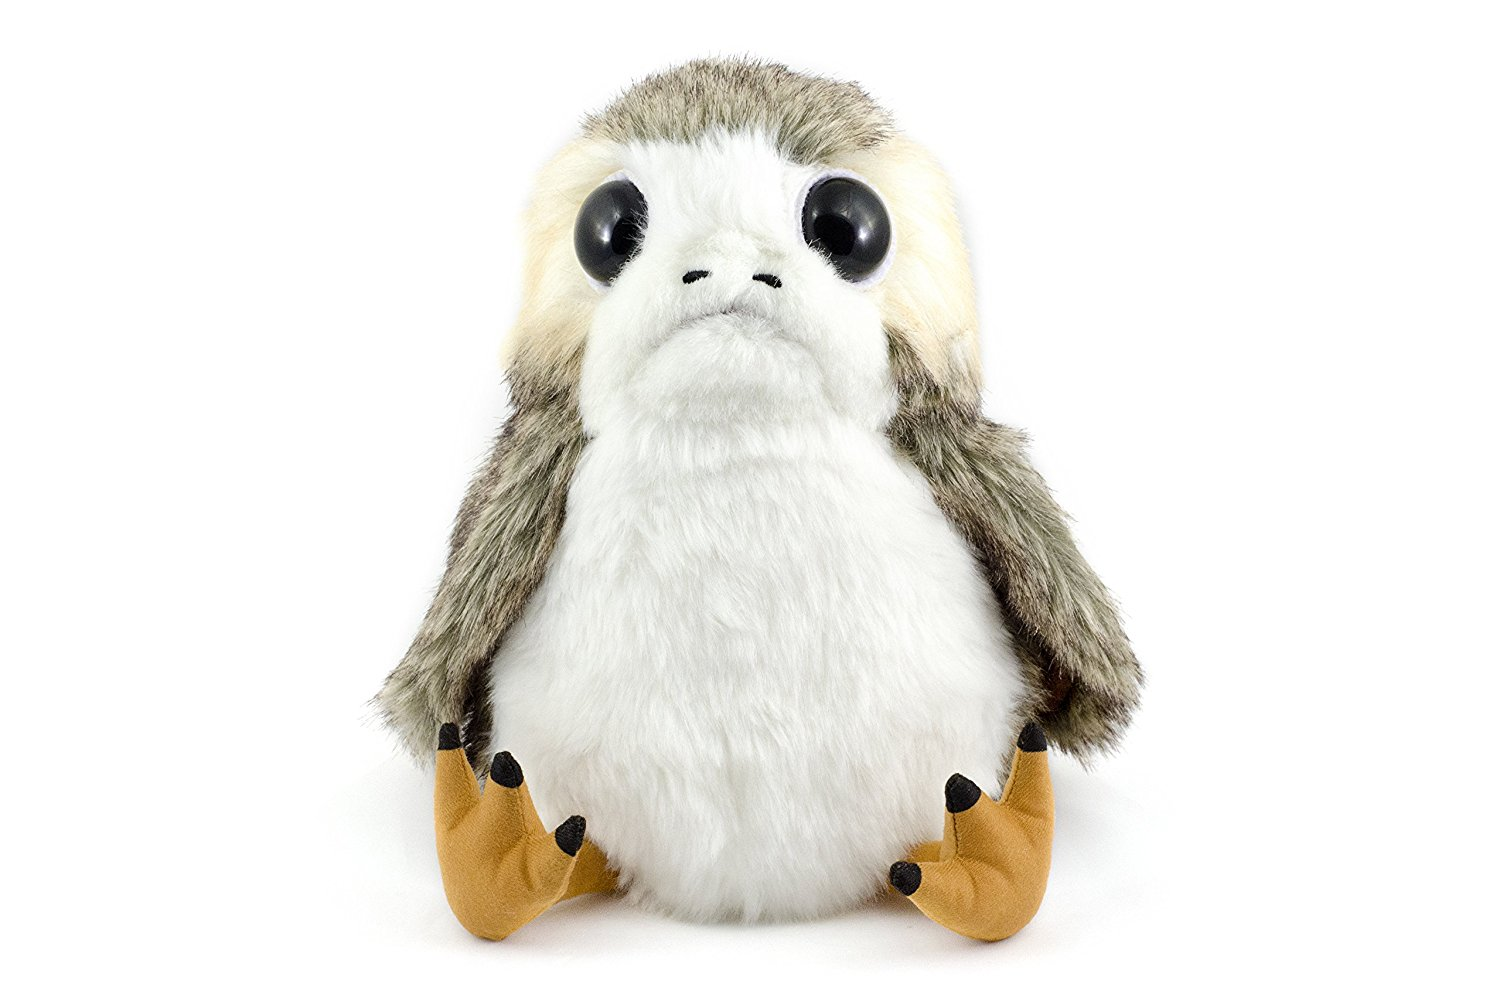 New Last Jedi Interactive Porg Plush Toy Available For Pre